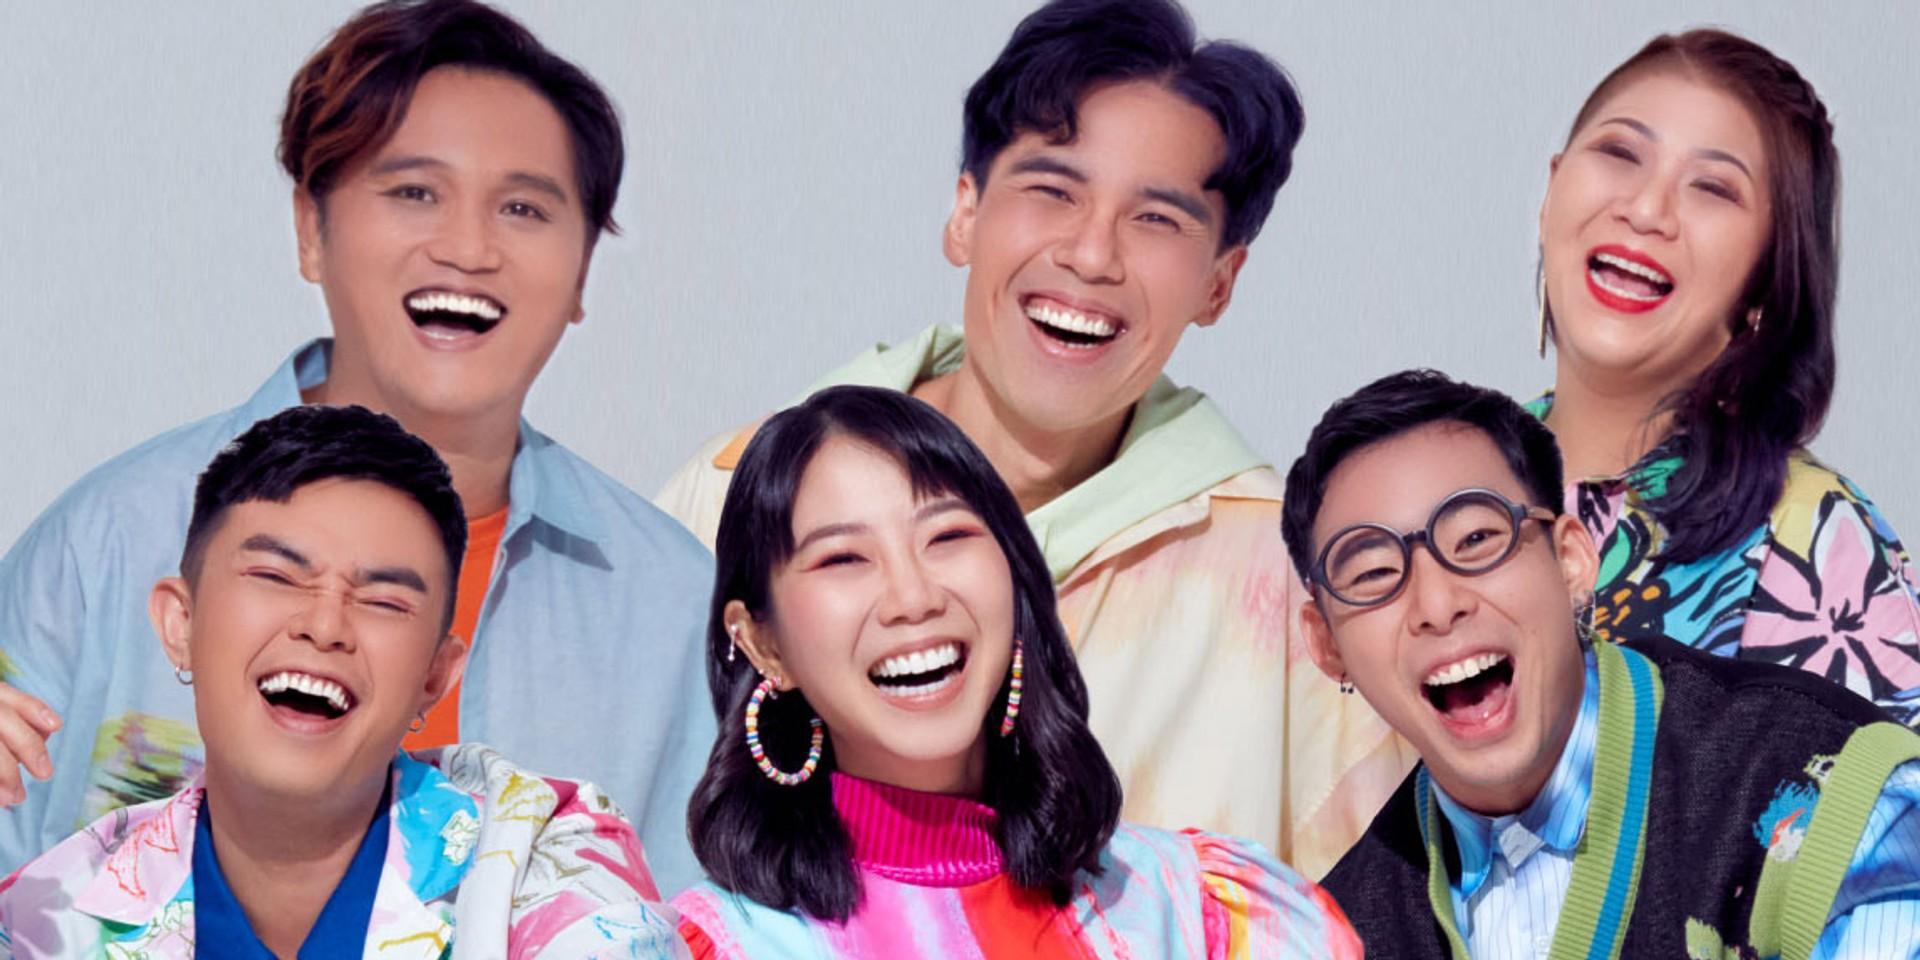 MICappella to host 'Love, MICappella' live concert in Singapore this May